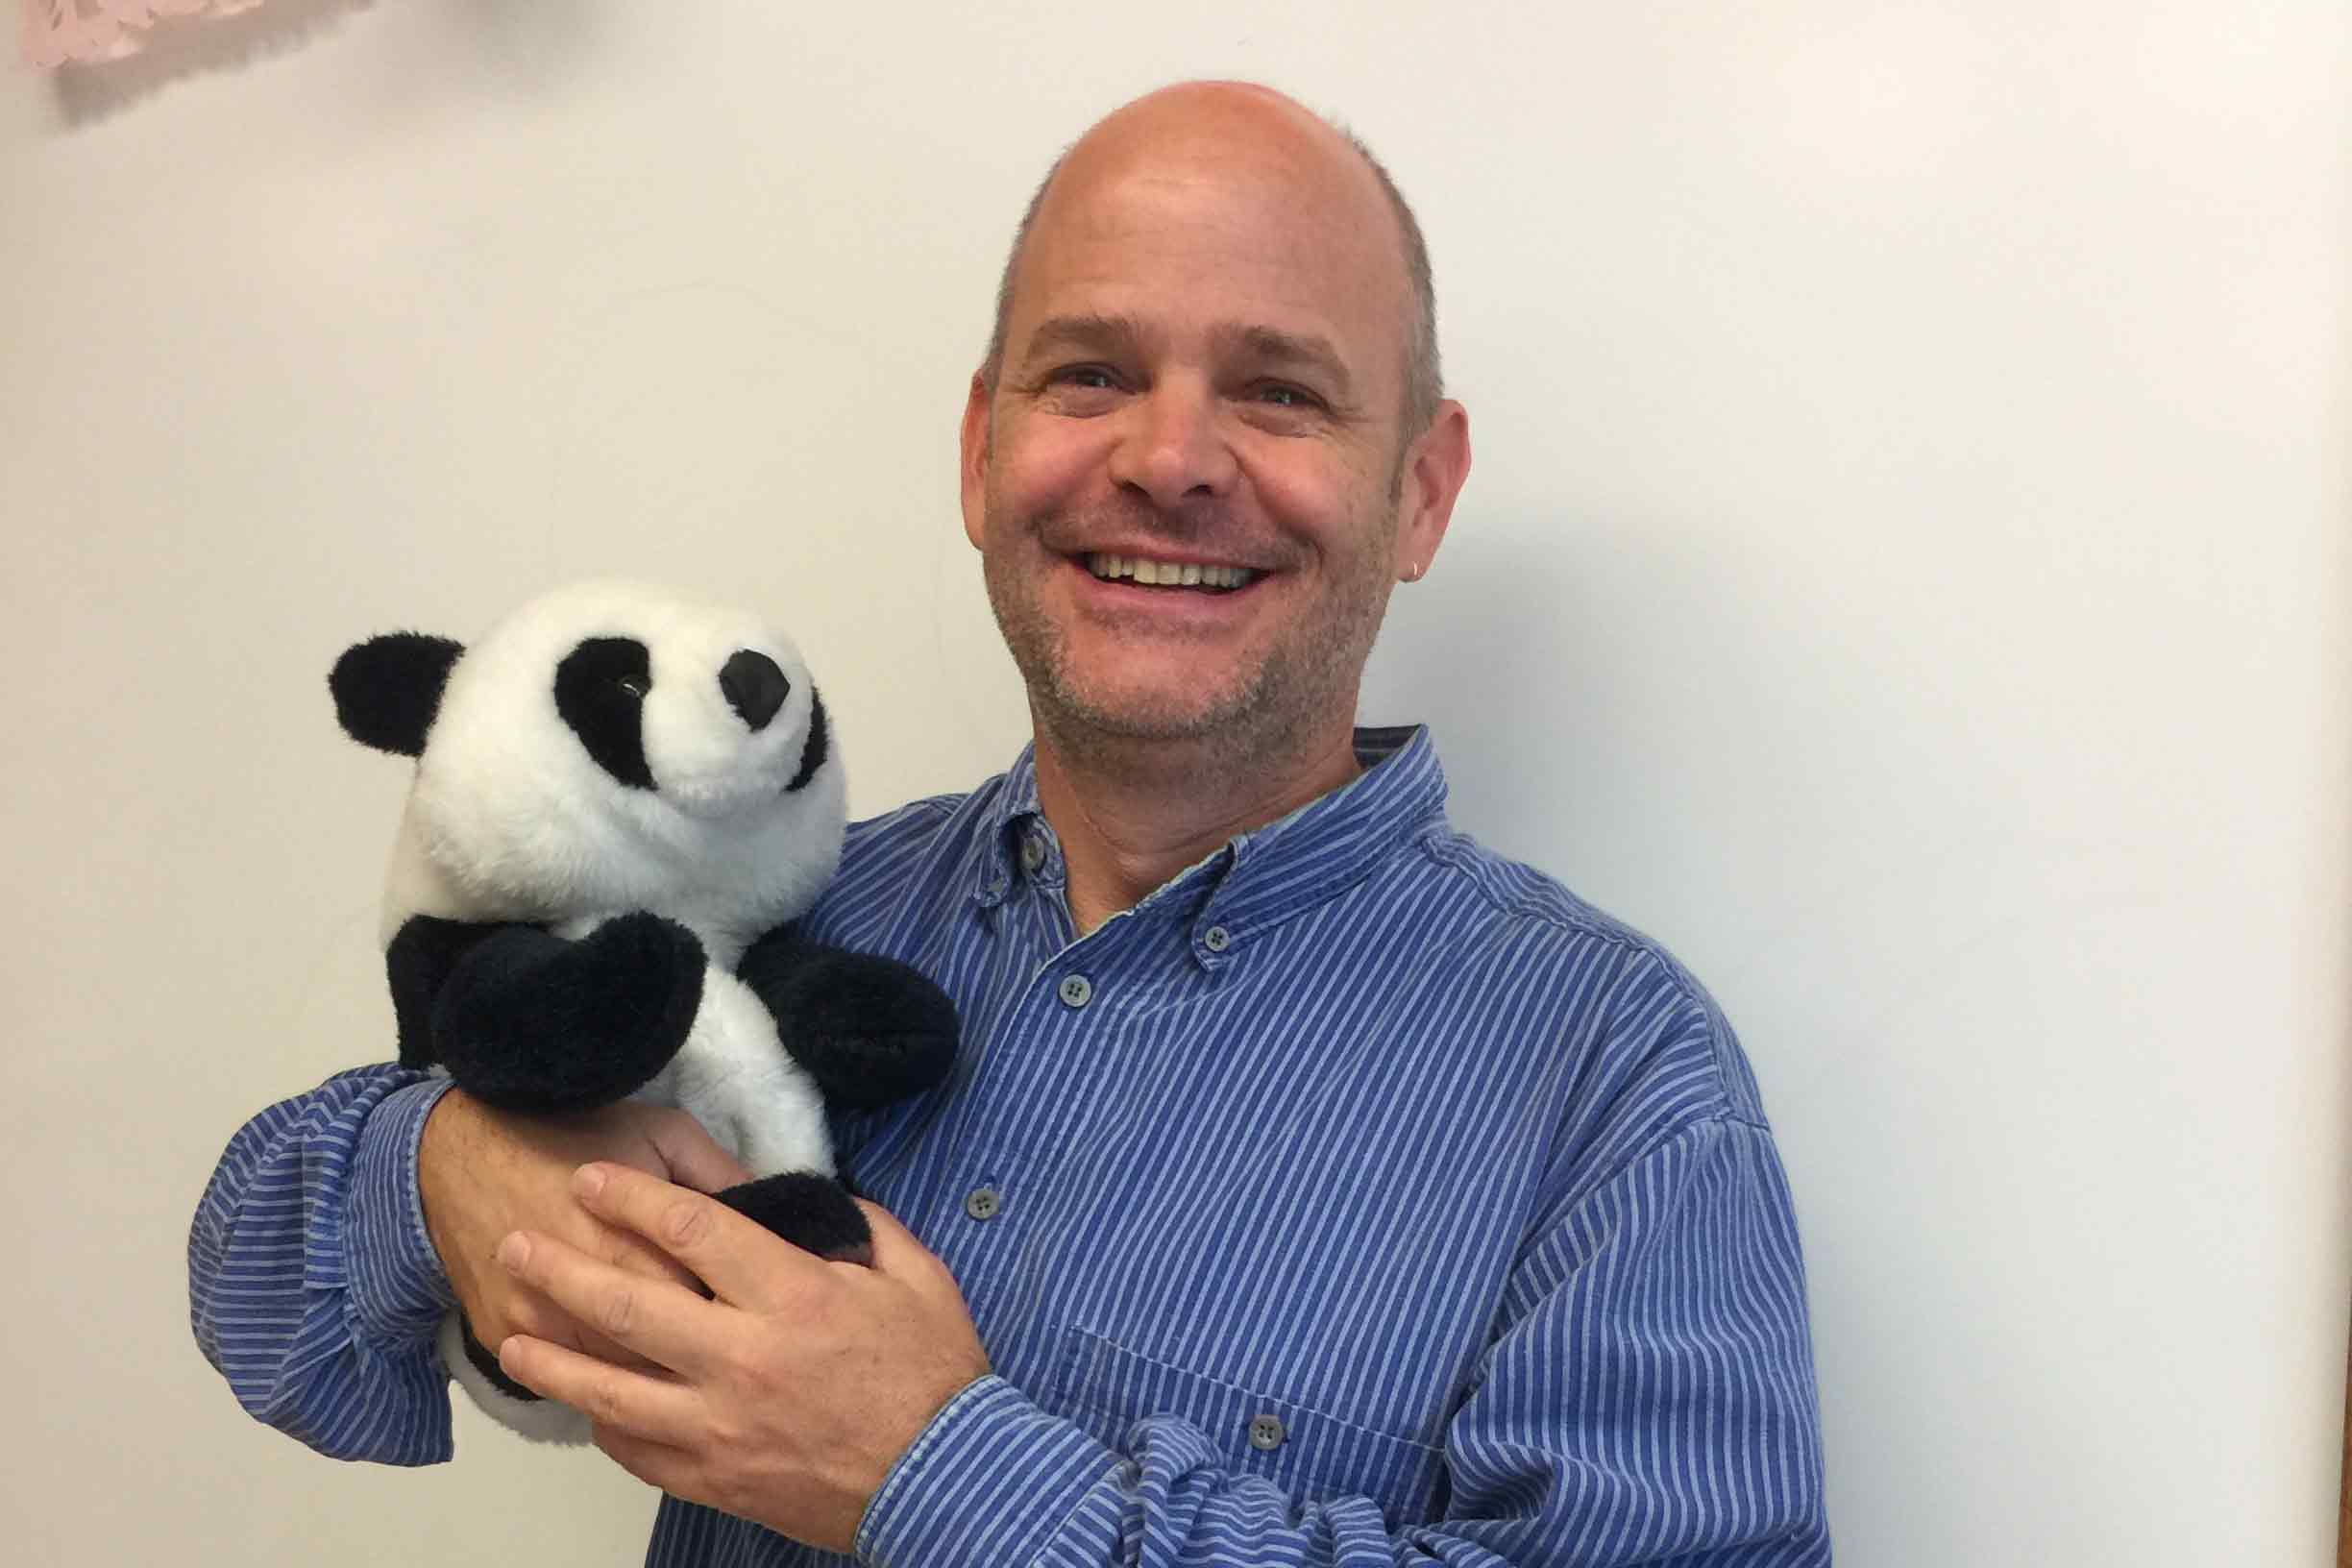 Jon Dicus holds Canvas, a panda bear used in class to show students how friendly the program can be.